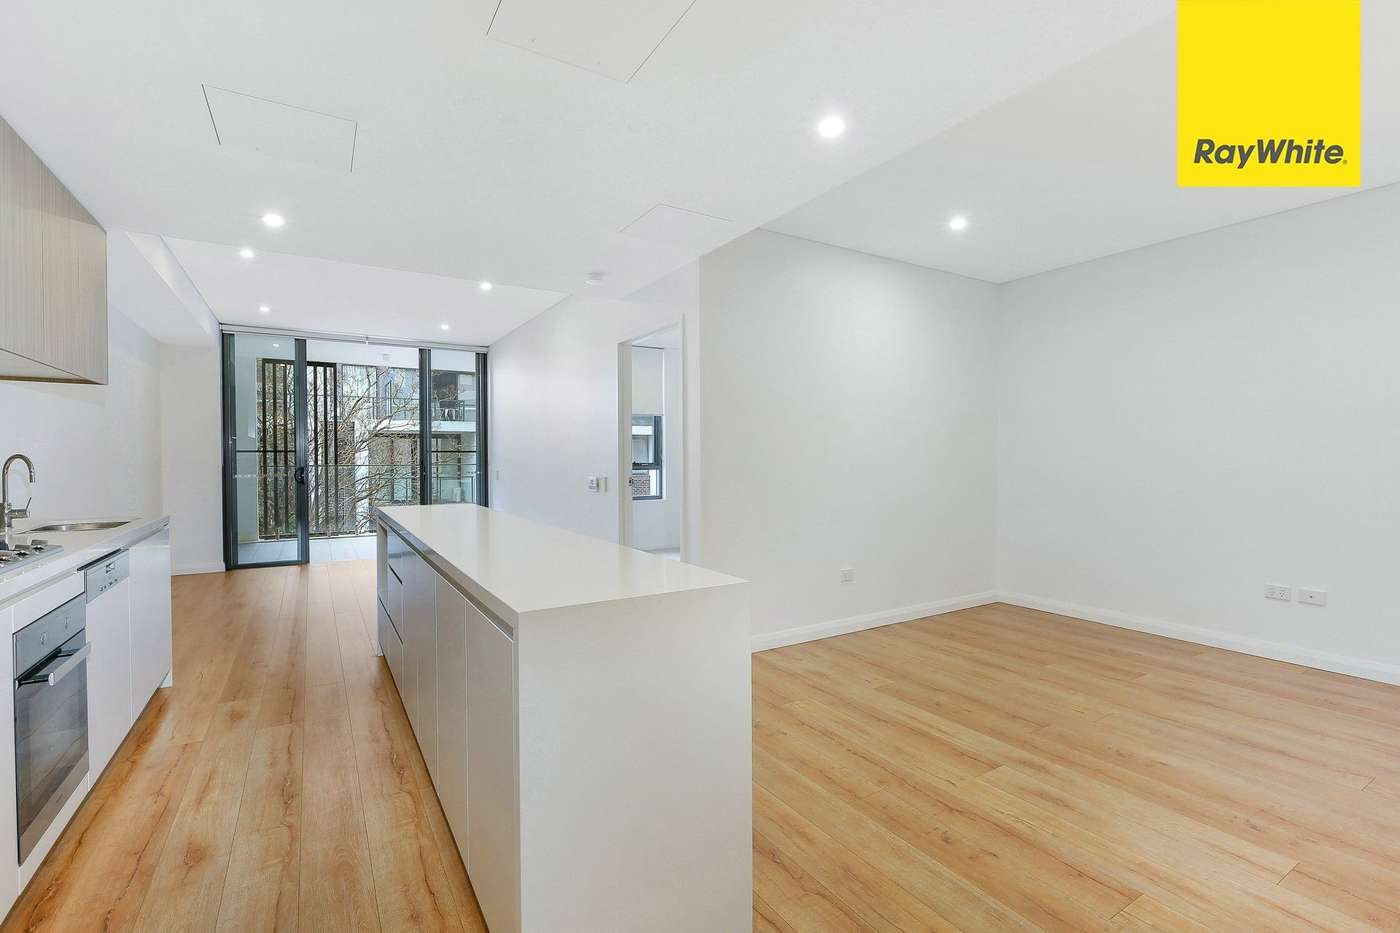 Main view of Homely apartment listing, 28-34 Carlingford Road, Epping, NSW 2121